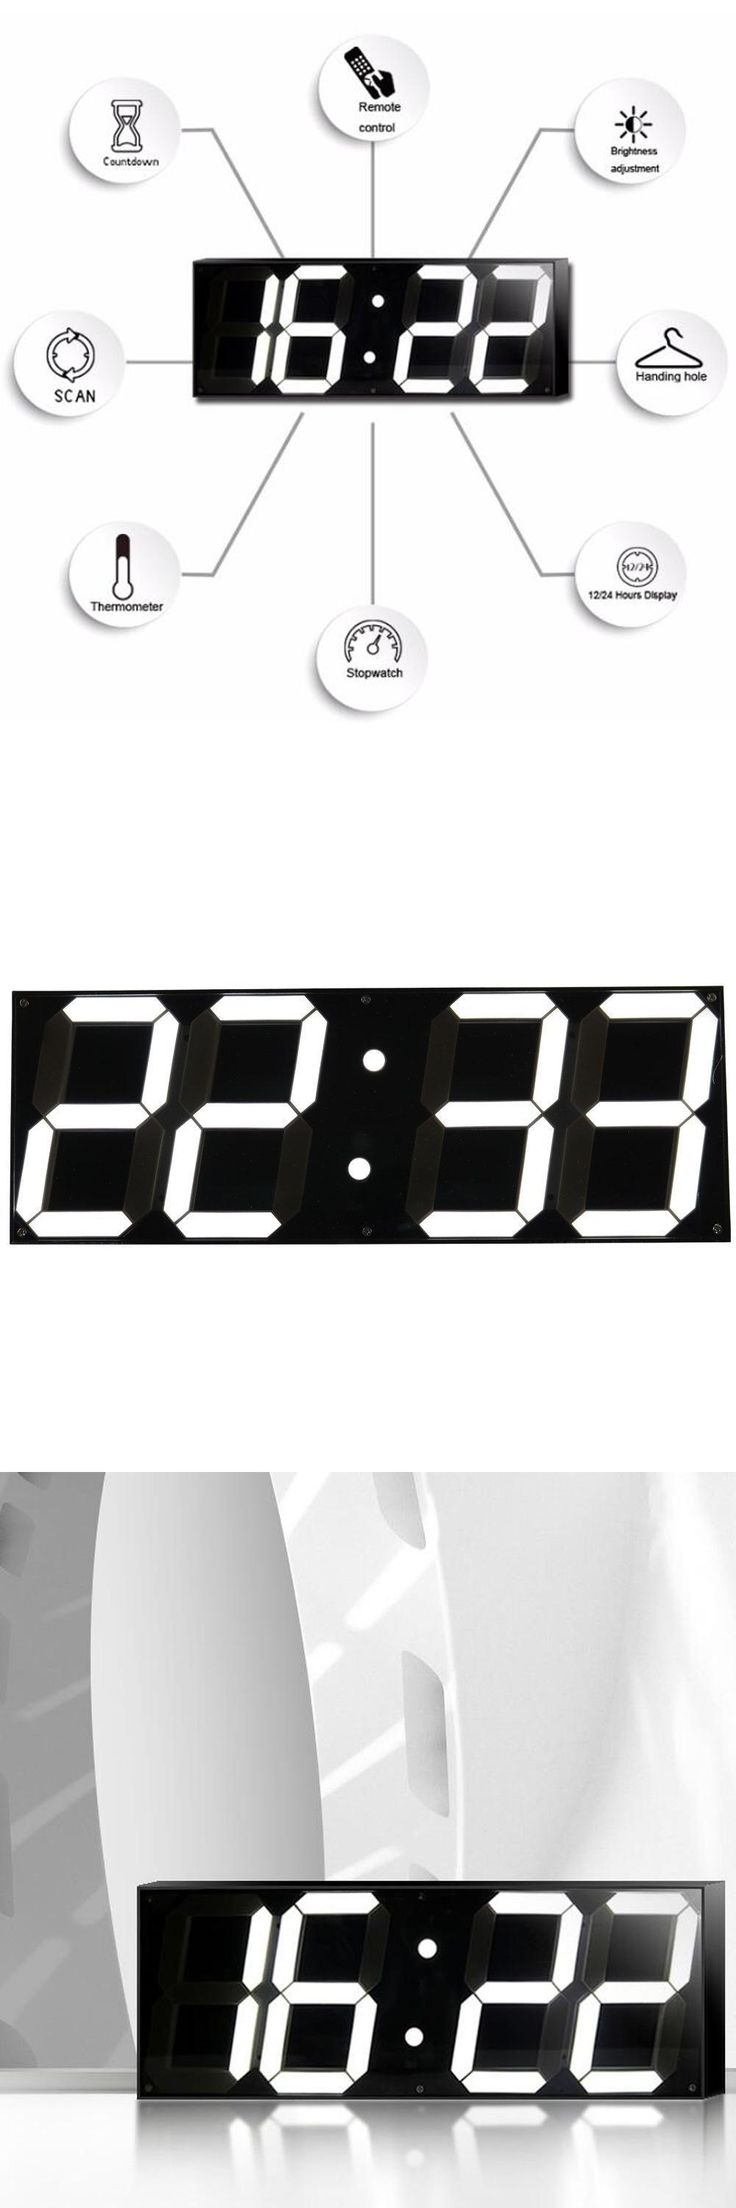 The 25 best led wall clock ideas on pinterest white clocks 59 inch jumbo digital led wall clock for school home decor train station amipublicfo Choice Image